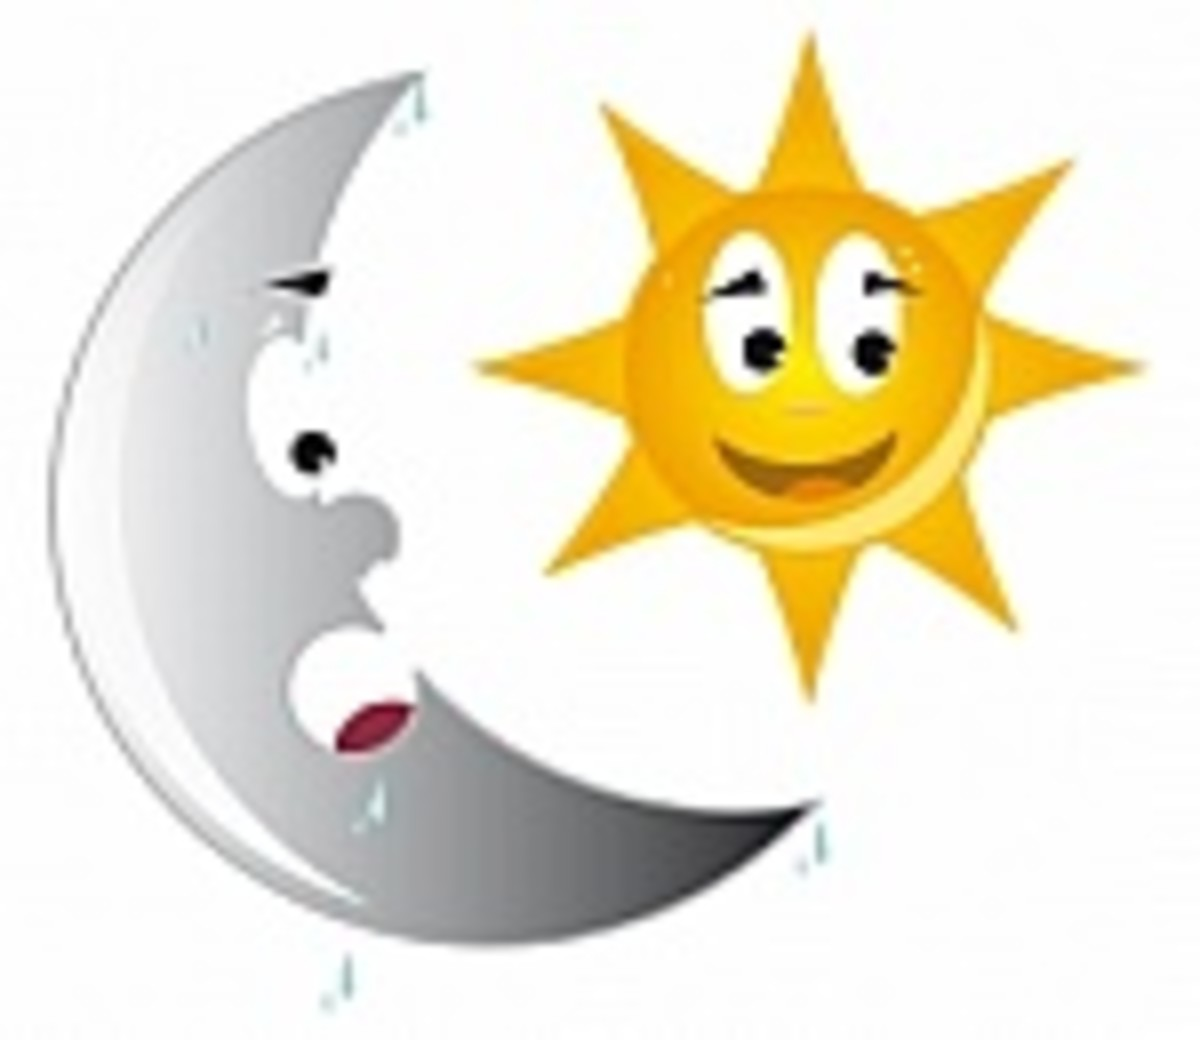 Moon signs change the personality of the sun sign.